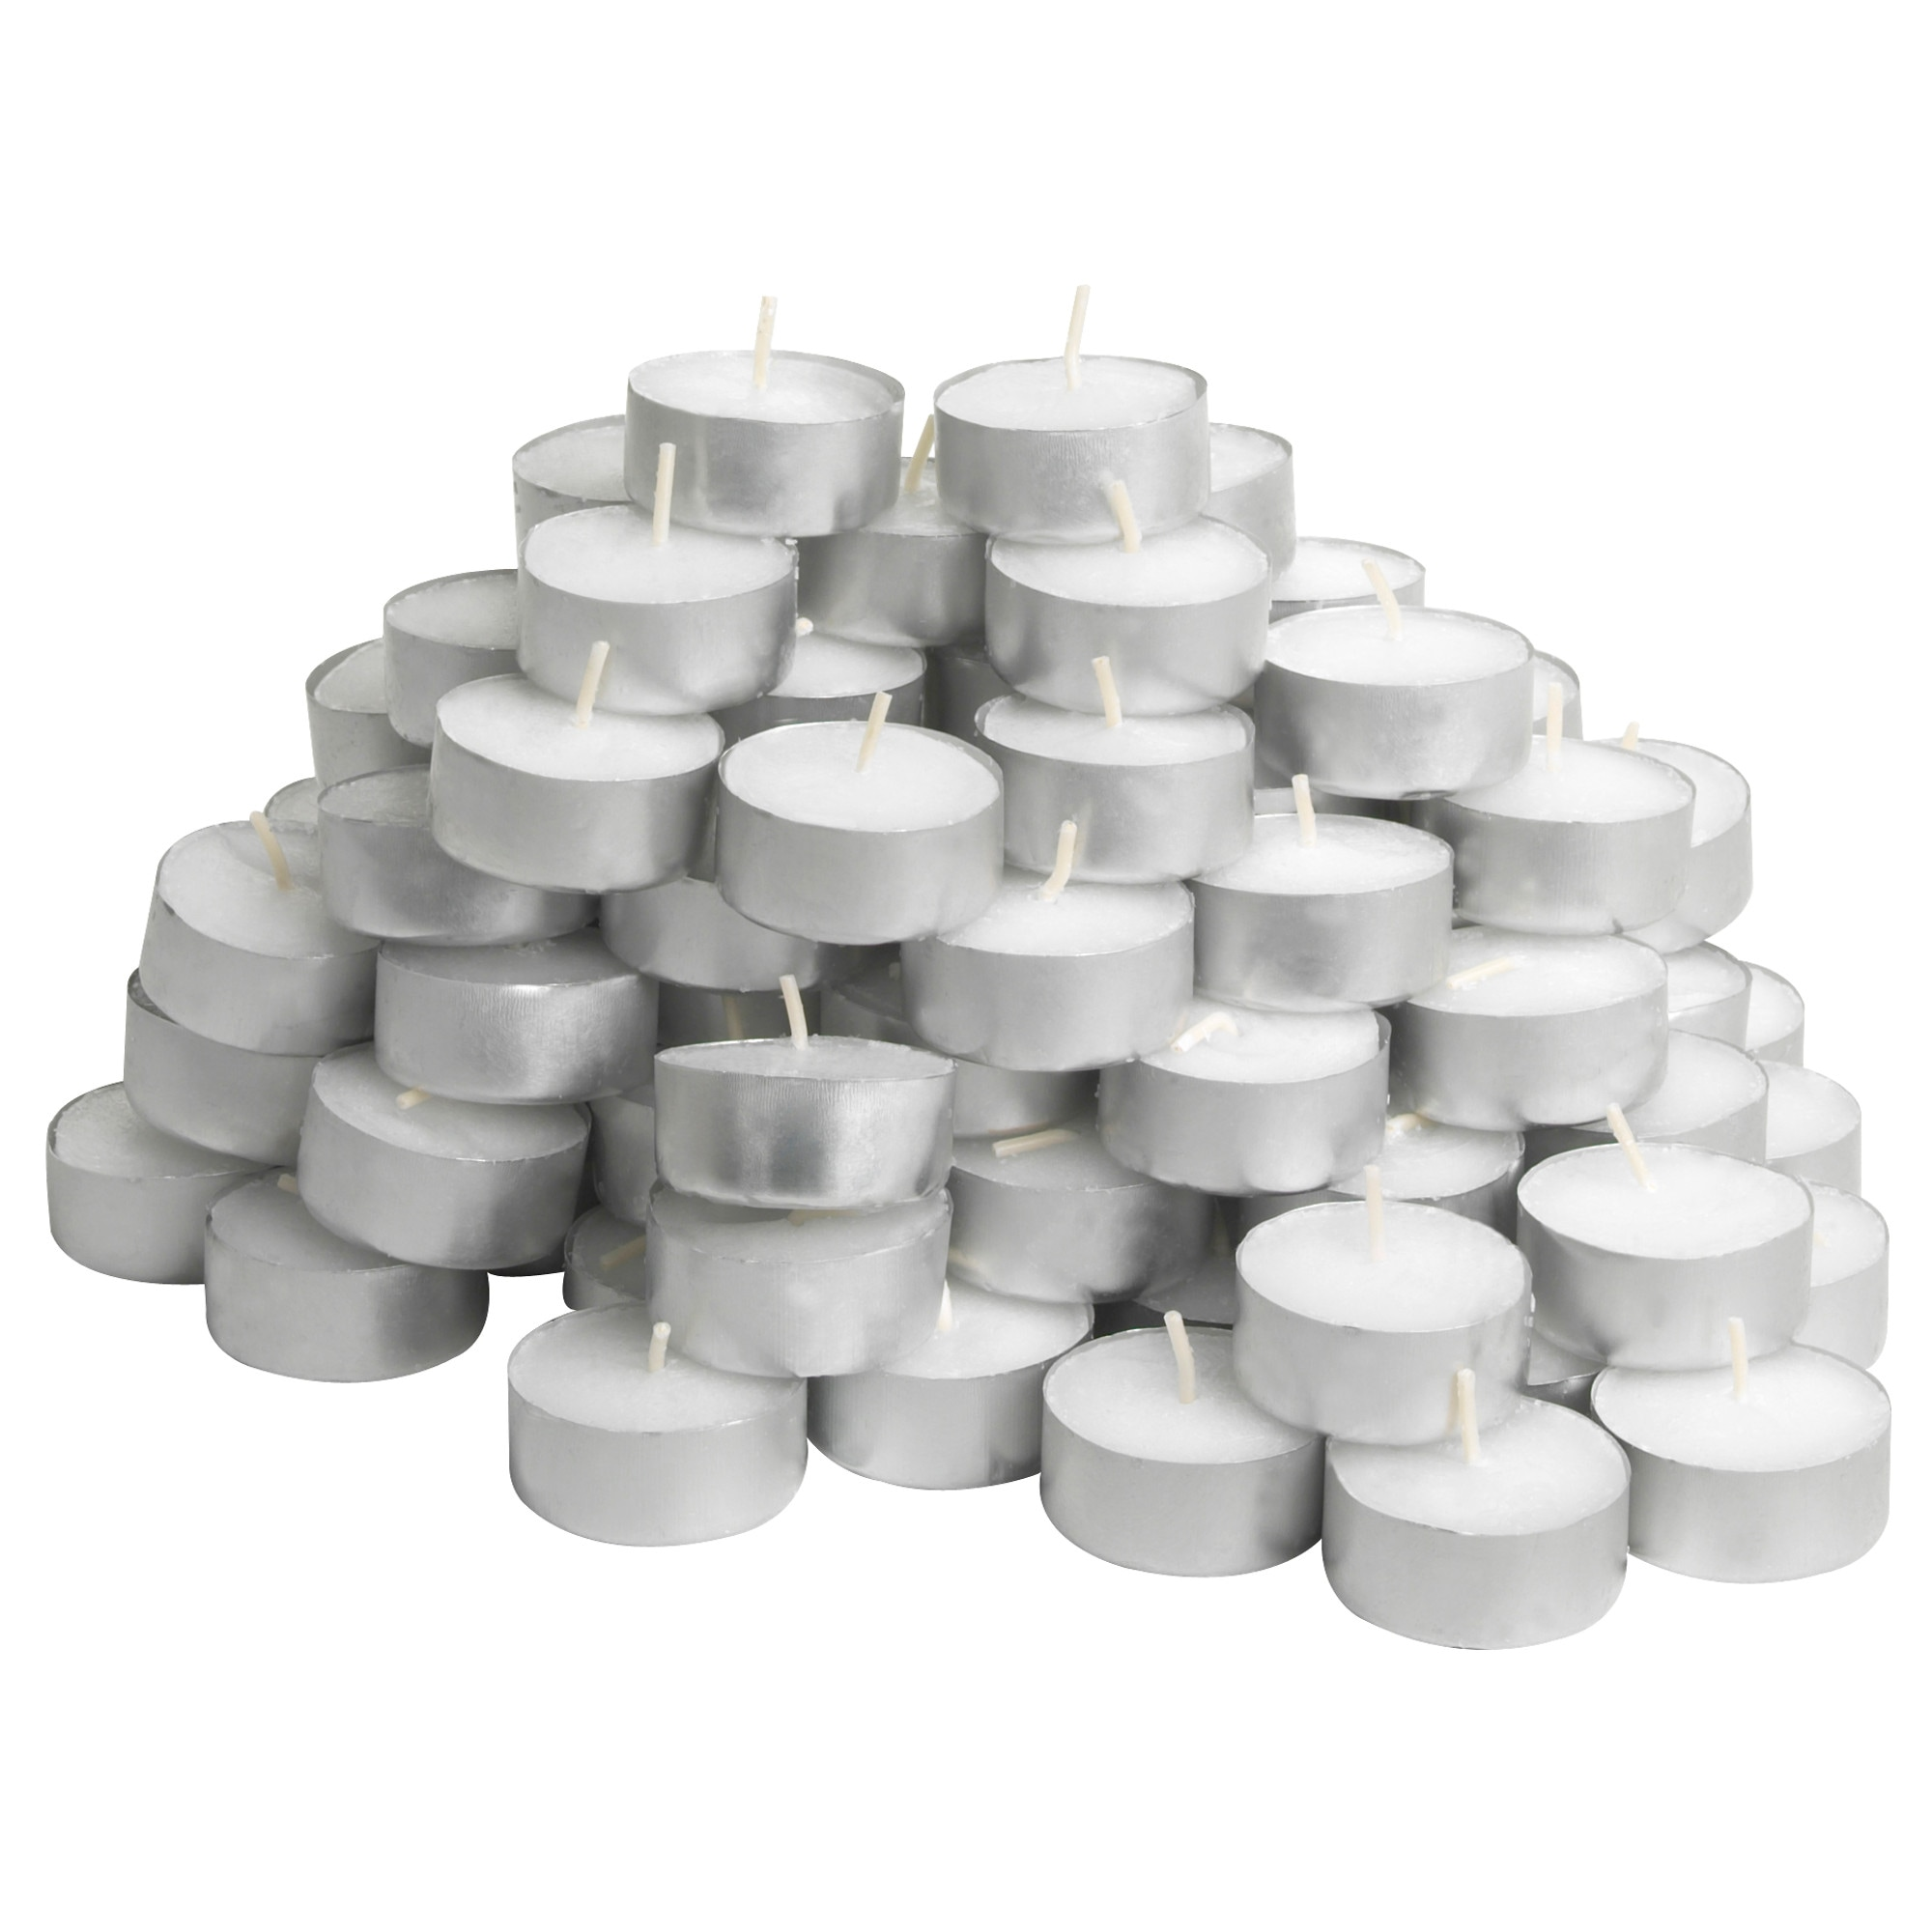 Uncategorized Ikea Floating Candle unscented candles tea lights ikea glimma tealights diameter 1 burning time 4 hr package quantity